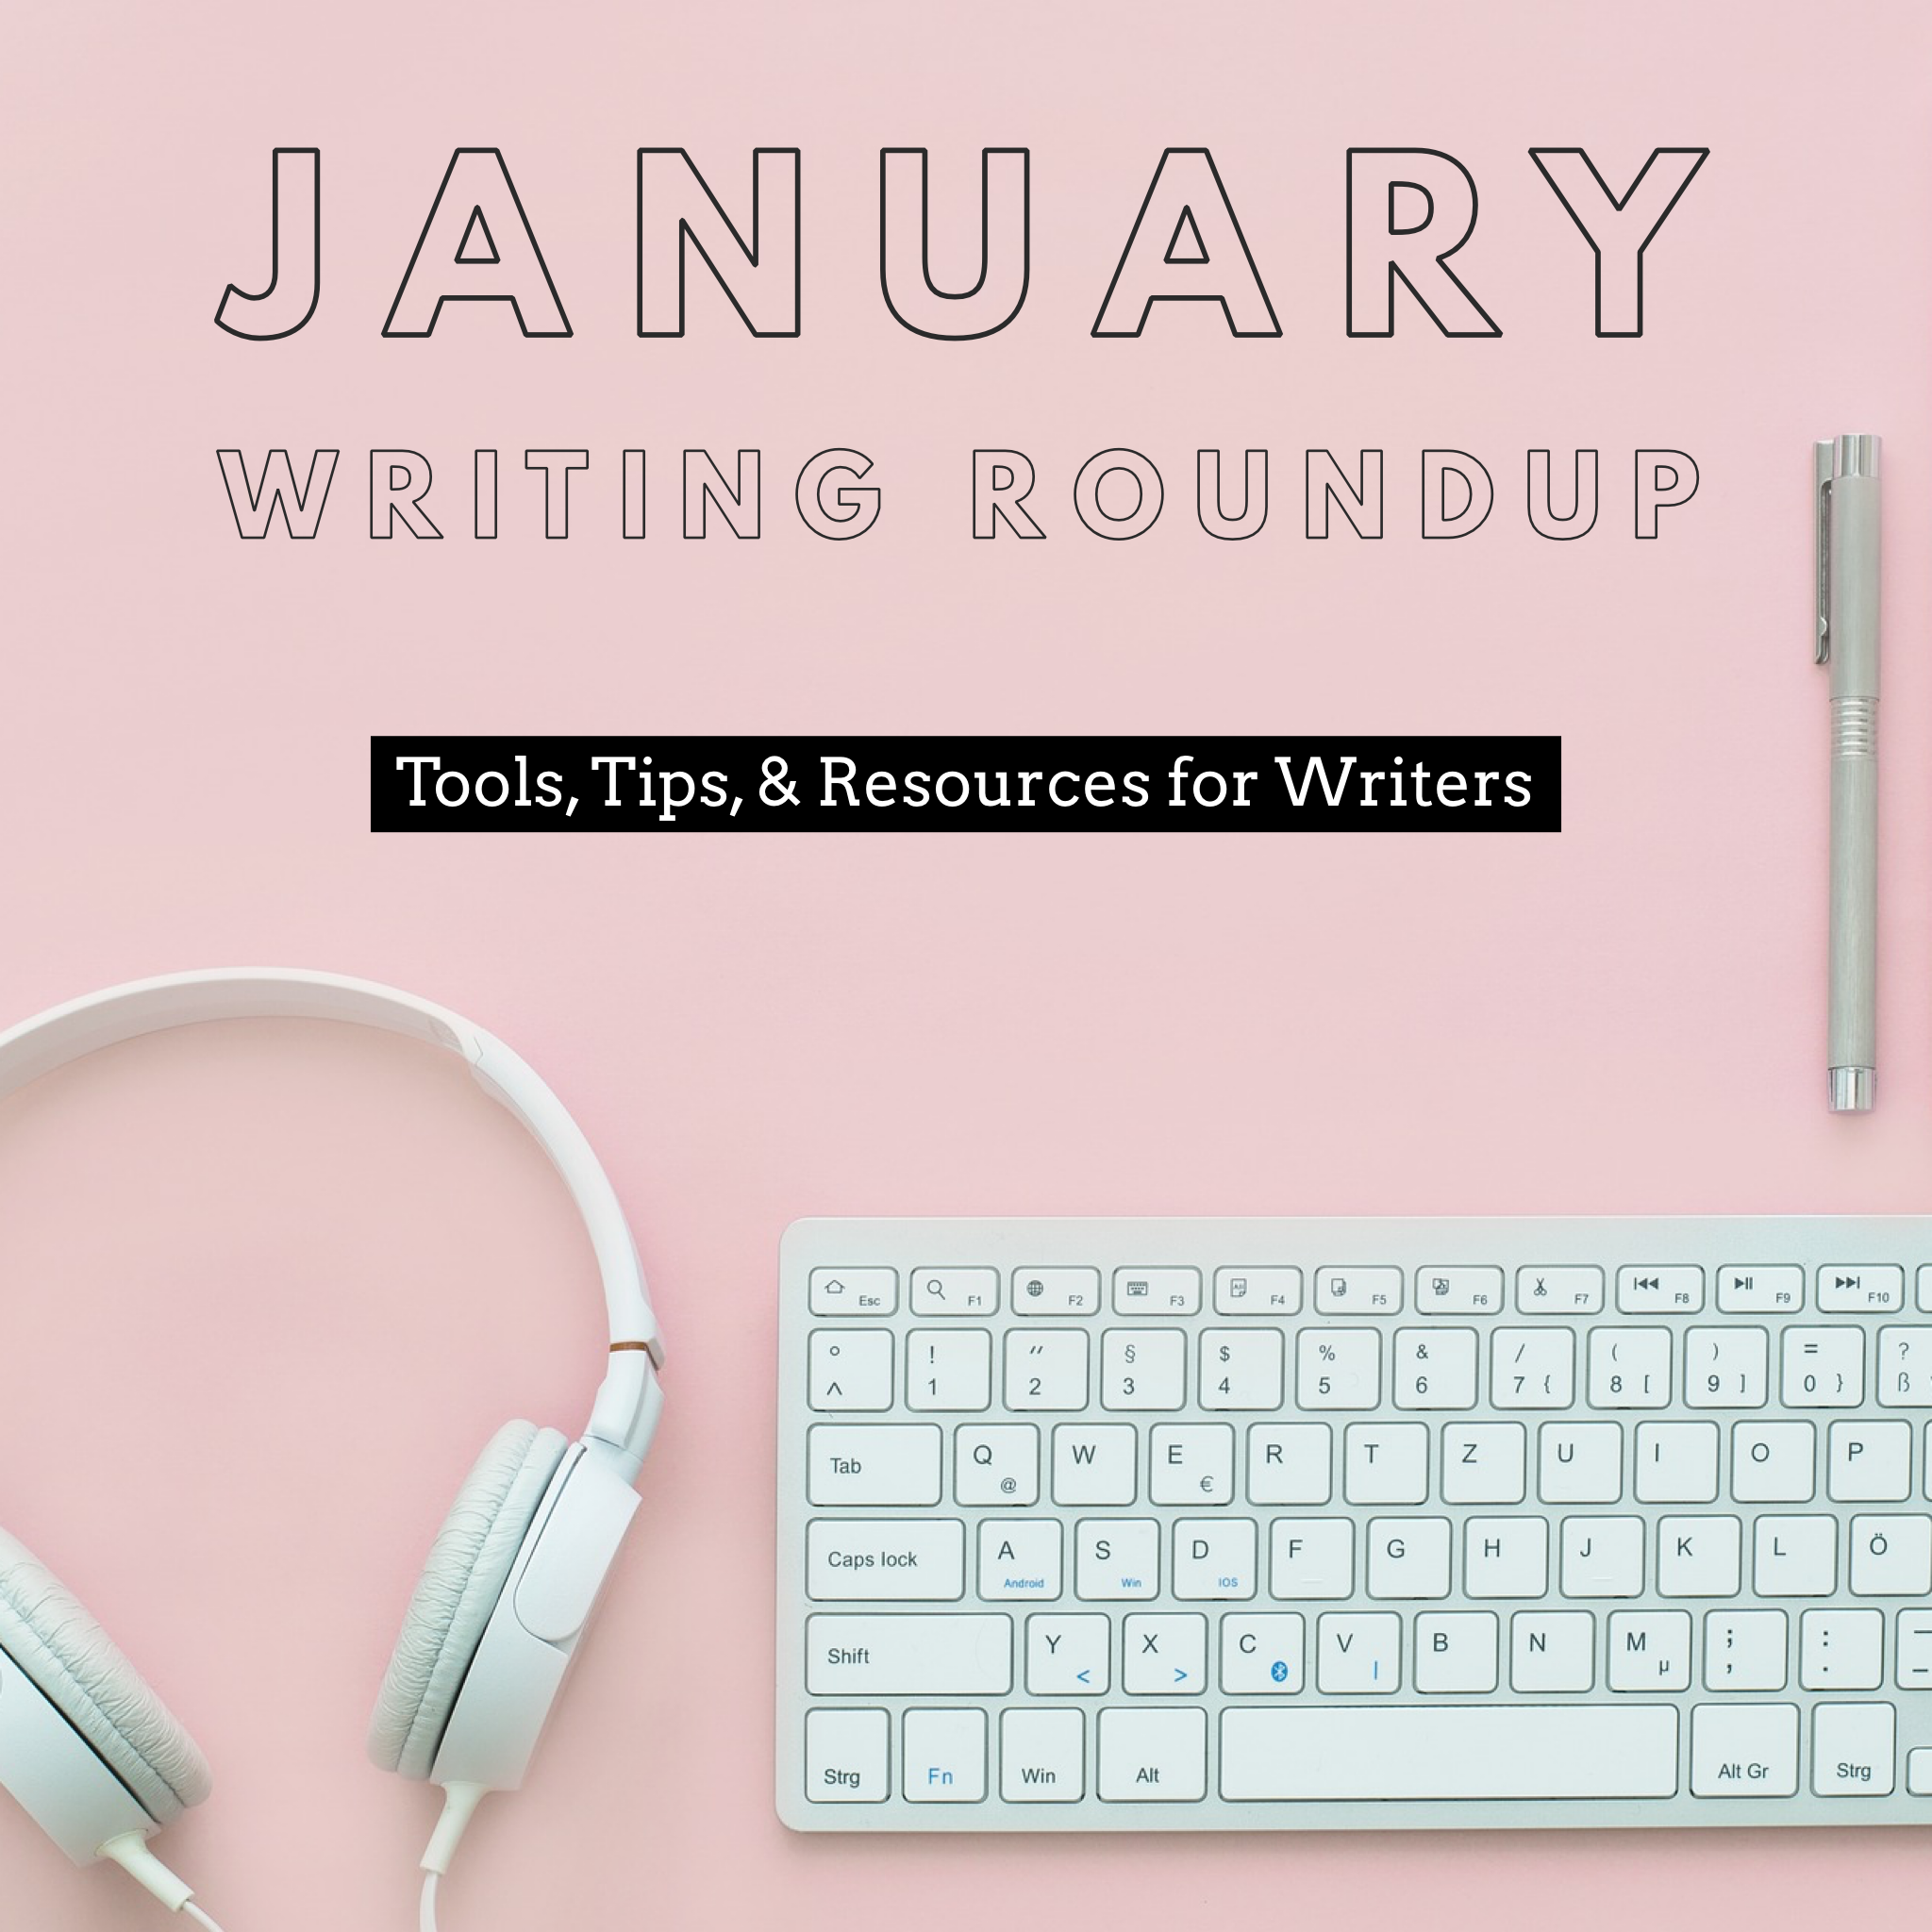 January Writing Roundup: Tools, Tips, and Resources for Writers by Diana Tyler